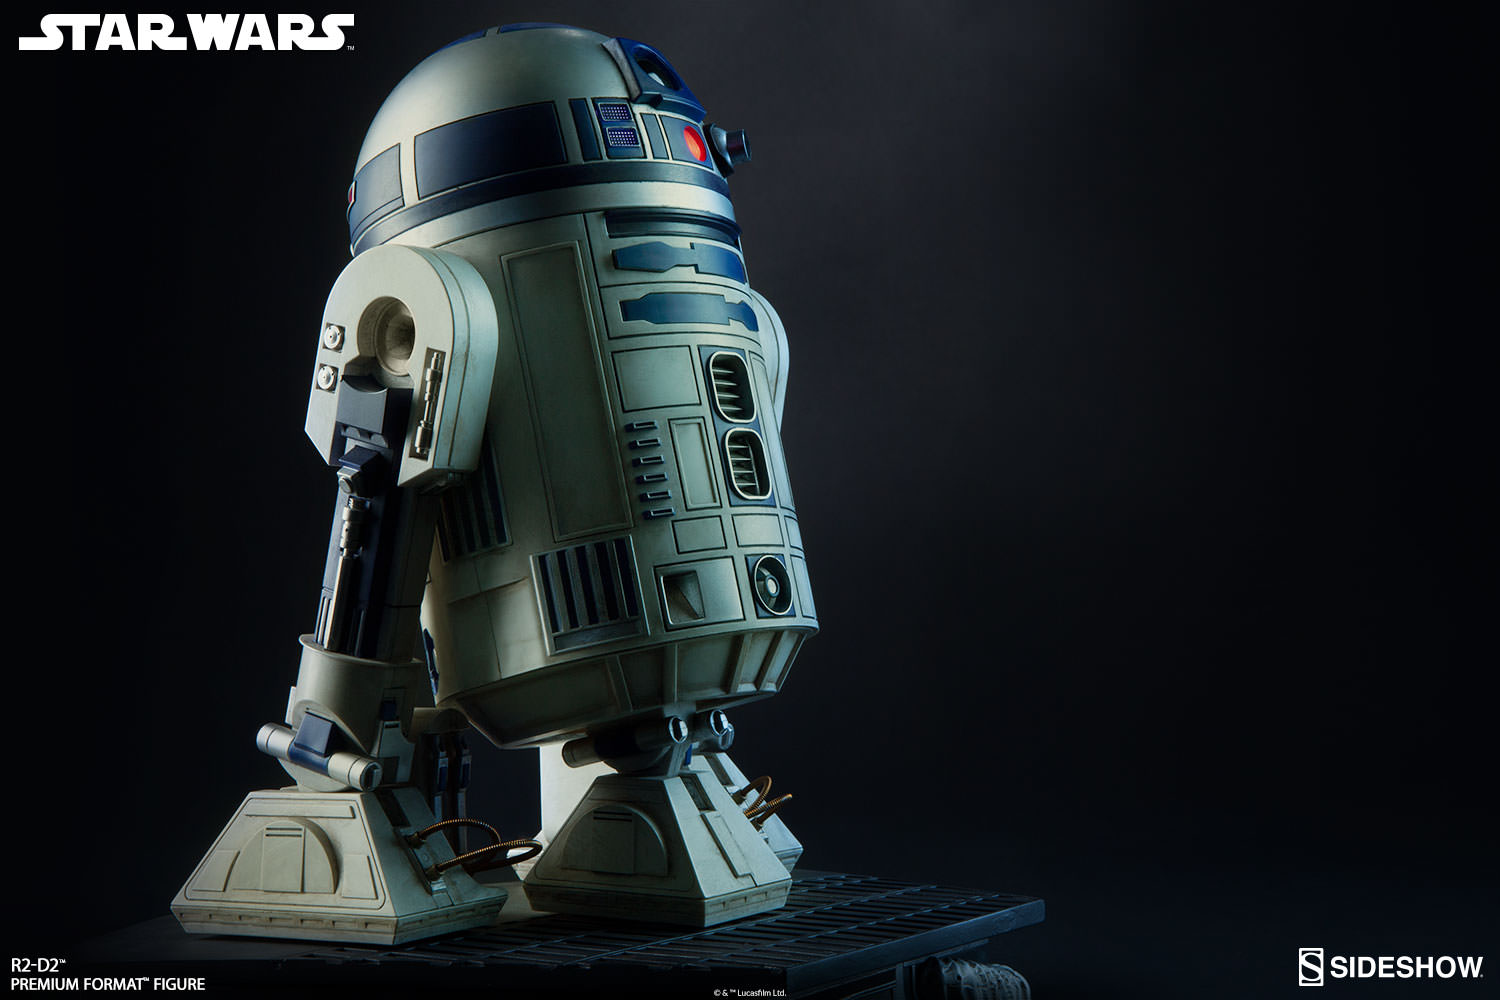 star wars r2 d2 premium format tm figure by sideshow collec sideshow collectibles. Black Bedroom Furniture Sets. Home Design Ideas